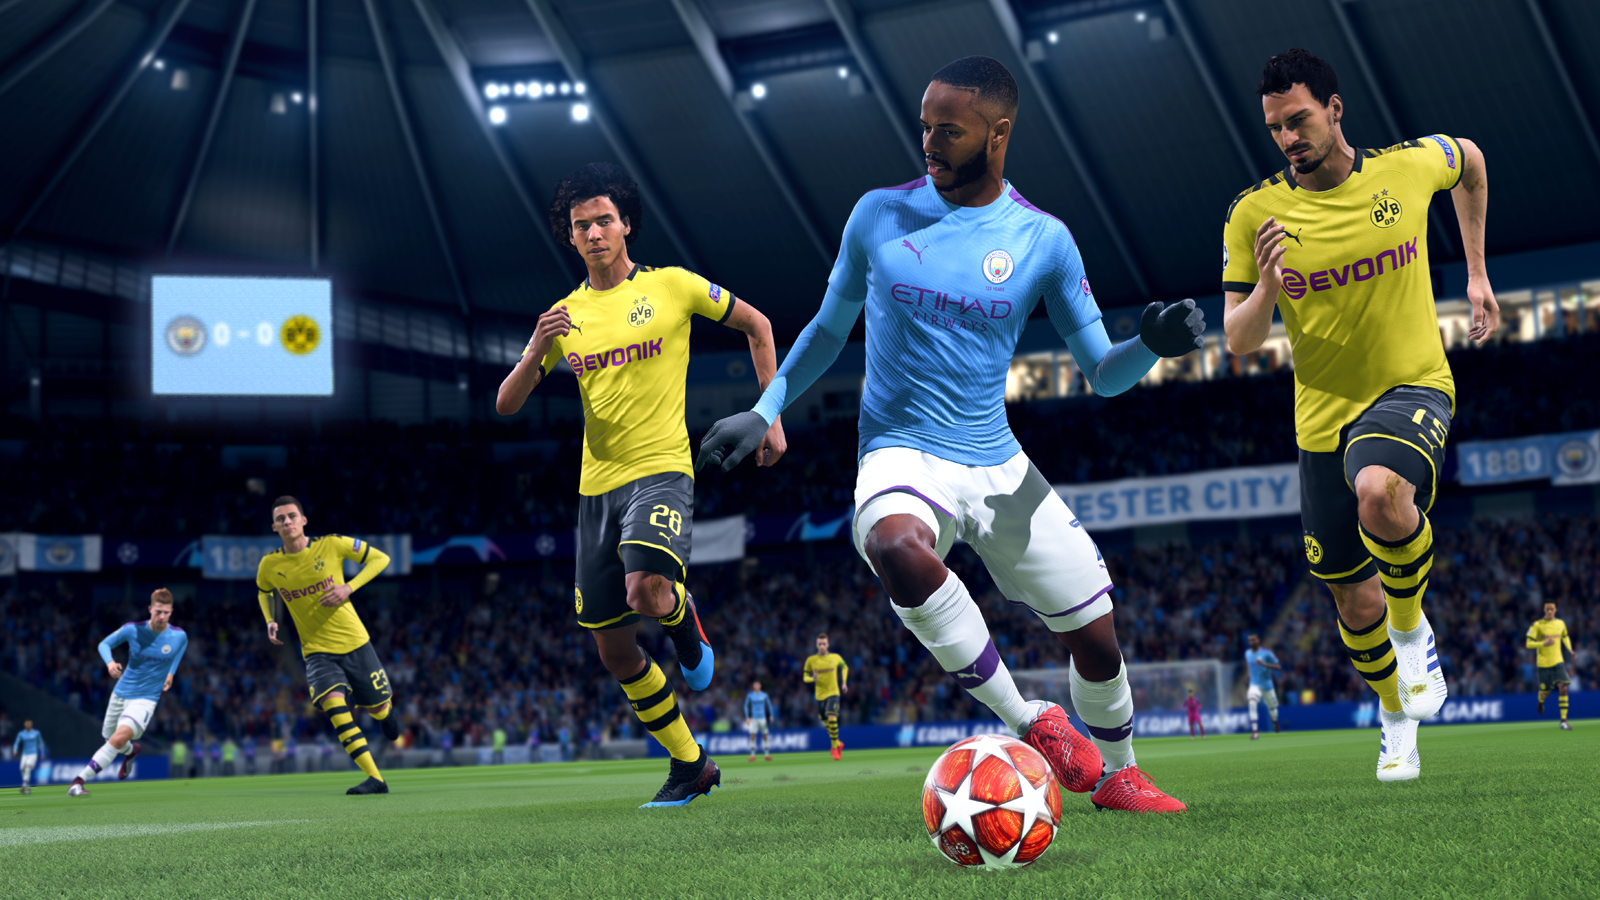 FIFA 20 - Soccer Video Game - EA SPORTS Official Site